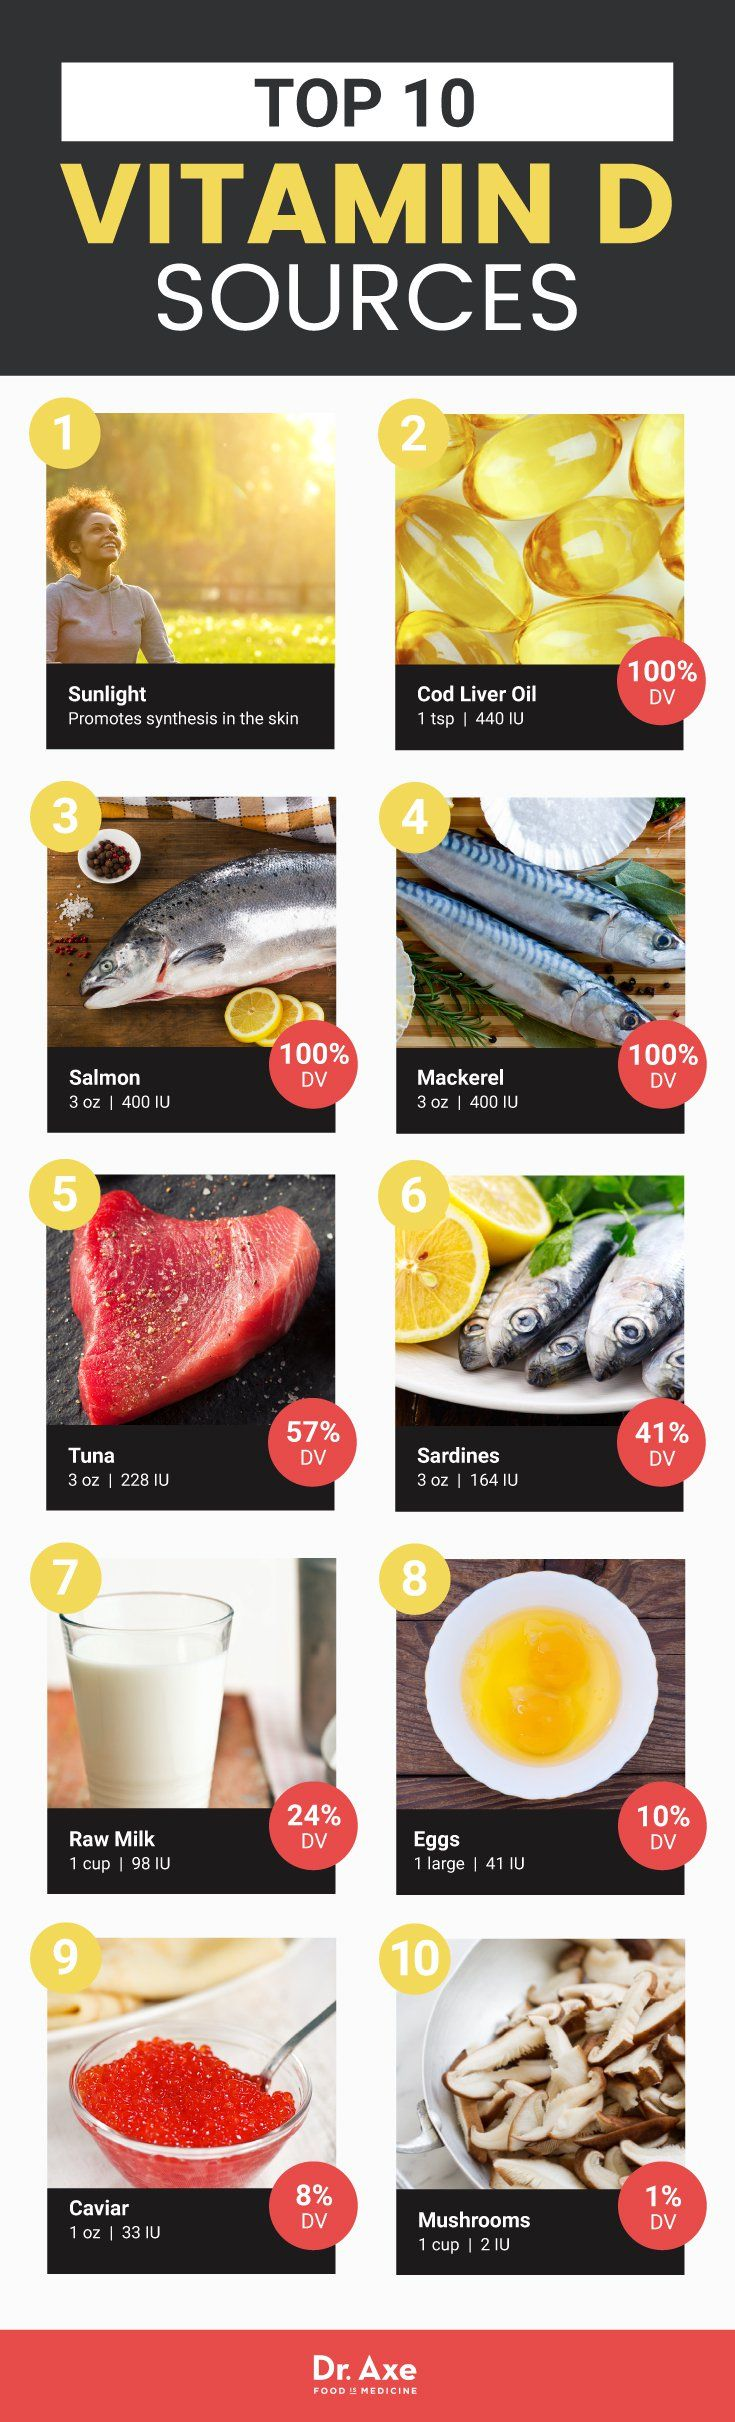 Vitamin D foods  | Posted By: NewHowtoLoseBellyFat.com